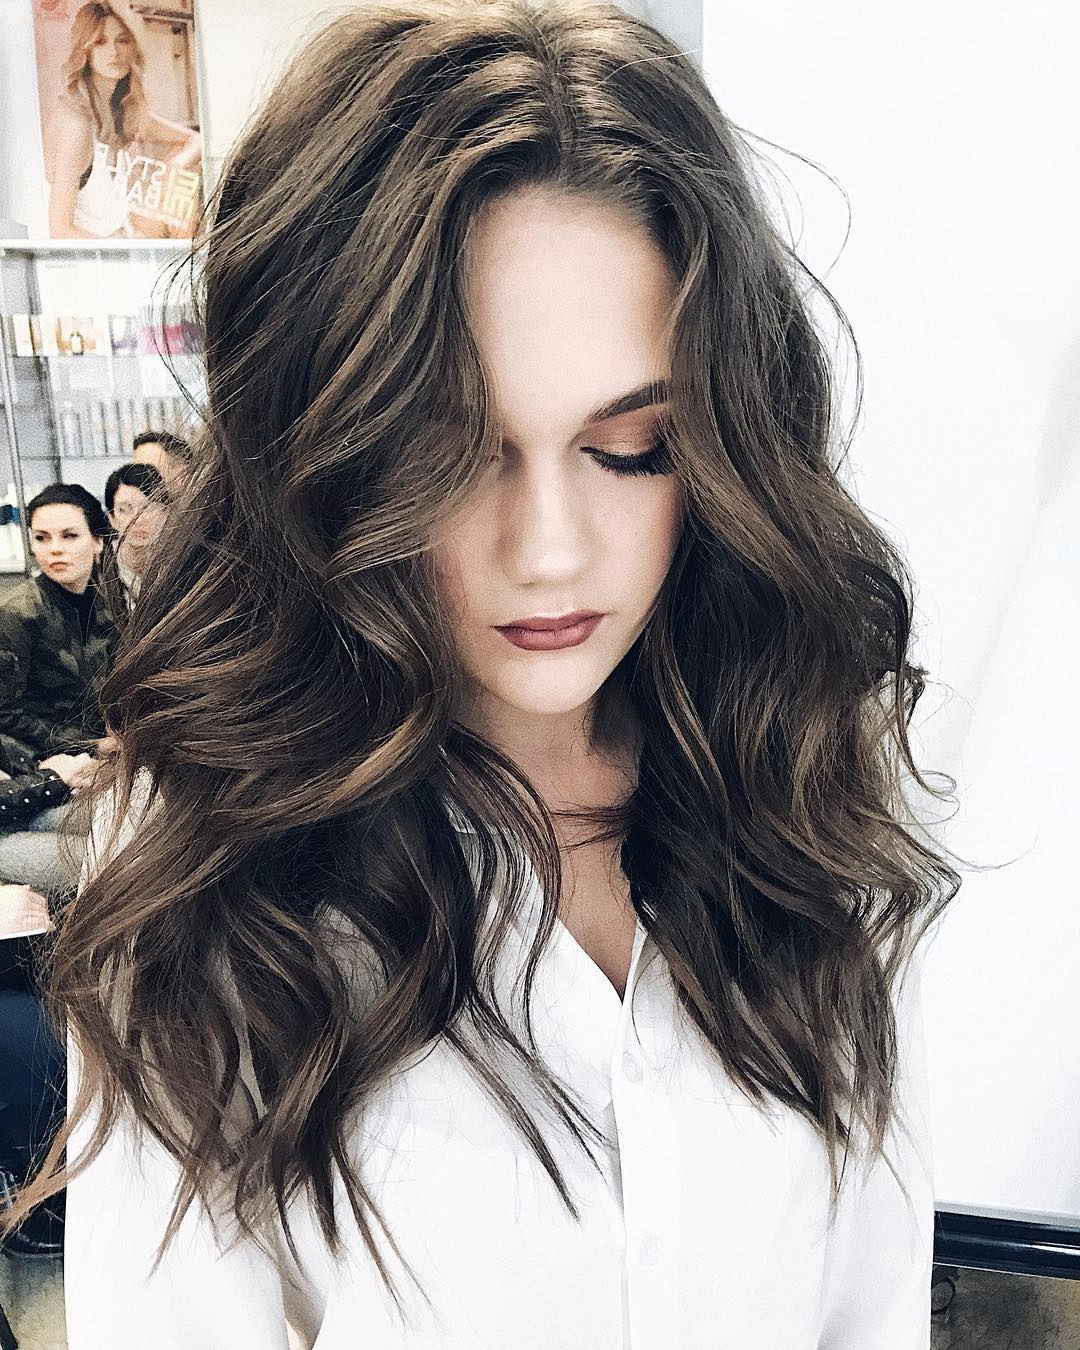 10 Gorgeous Long Wavy Perm Hairstyles, Long Hair Styles 2019 Inside Recent Long Tousled Voluminous Hairstyles (Gallery 17 of 20)